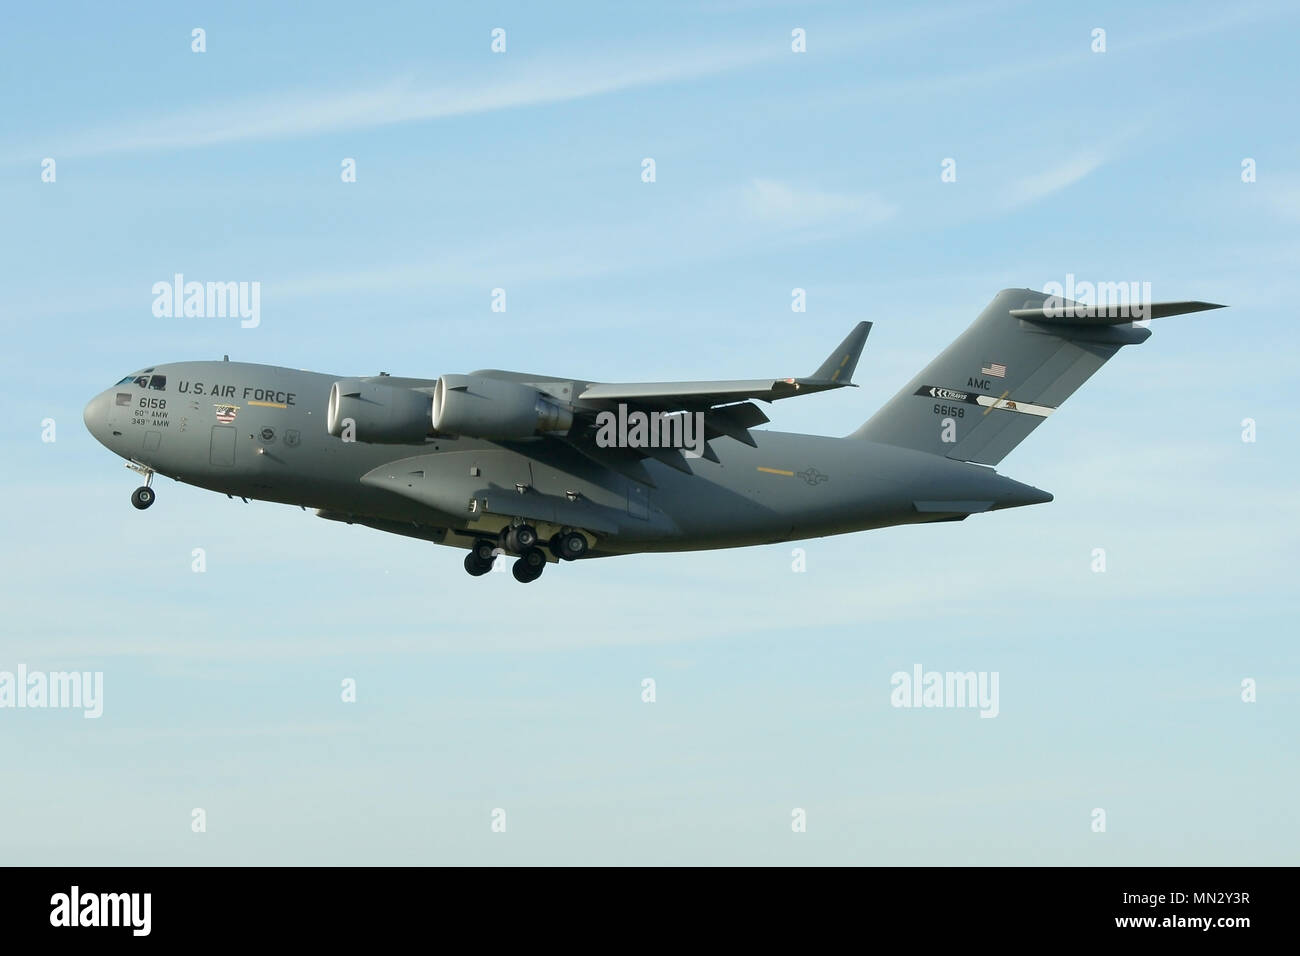 USAF C-17A Globemaster on approach to RAF Mildenhall. The aircraft comes from the 60th AMW at Travis AFB and still carries the 9/11 memorial nose art. - Stock Image